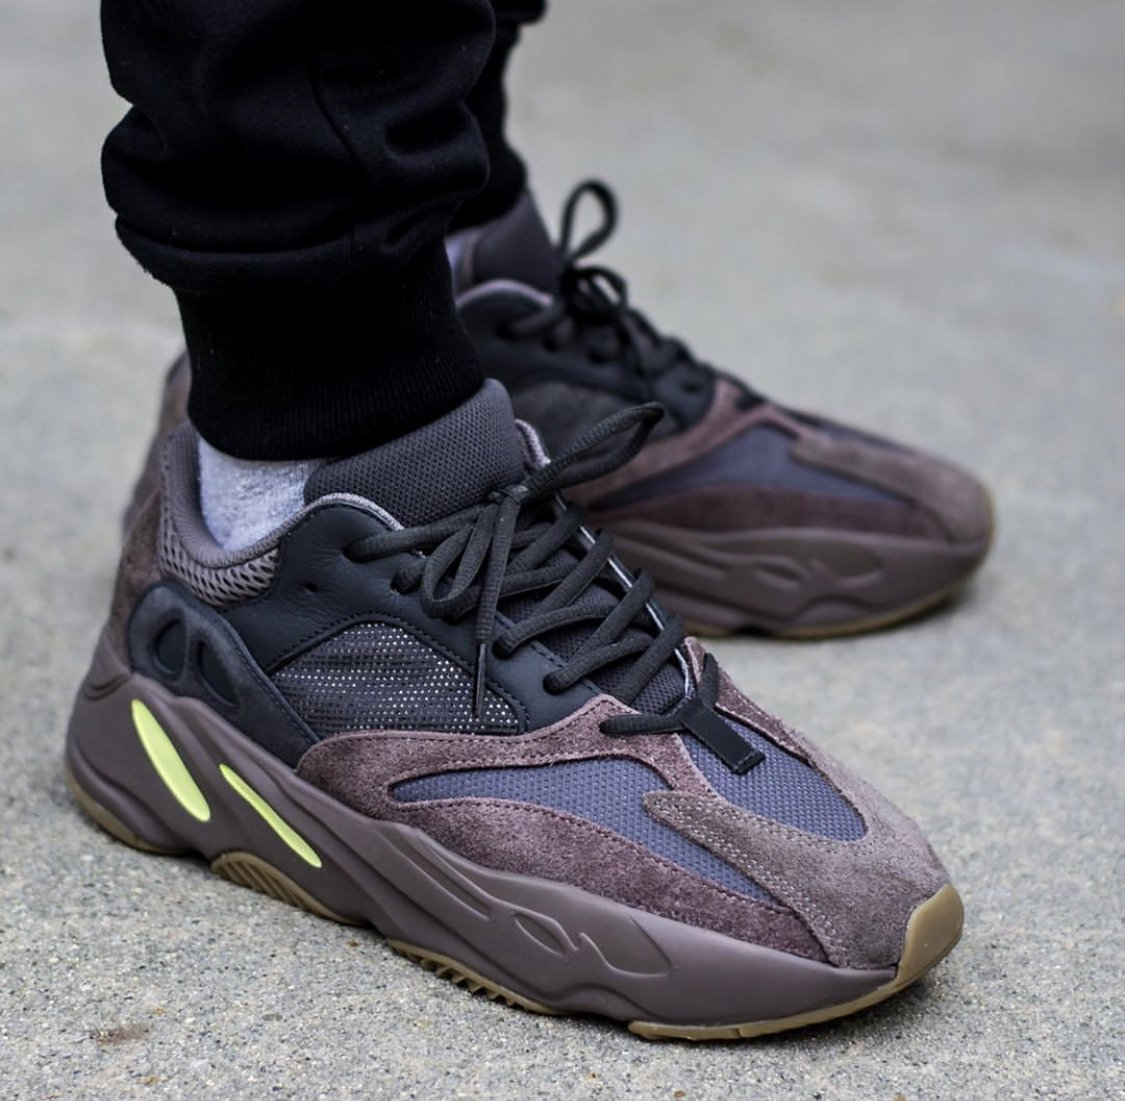 06831684adccf  40 OFF + FREE shipping on the adidas YEEZY Boost 700